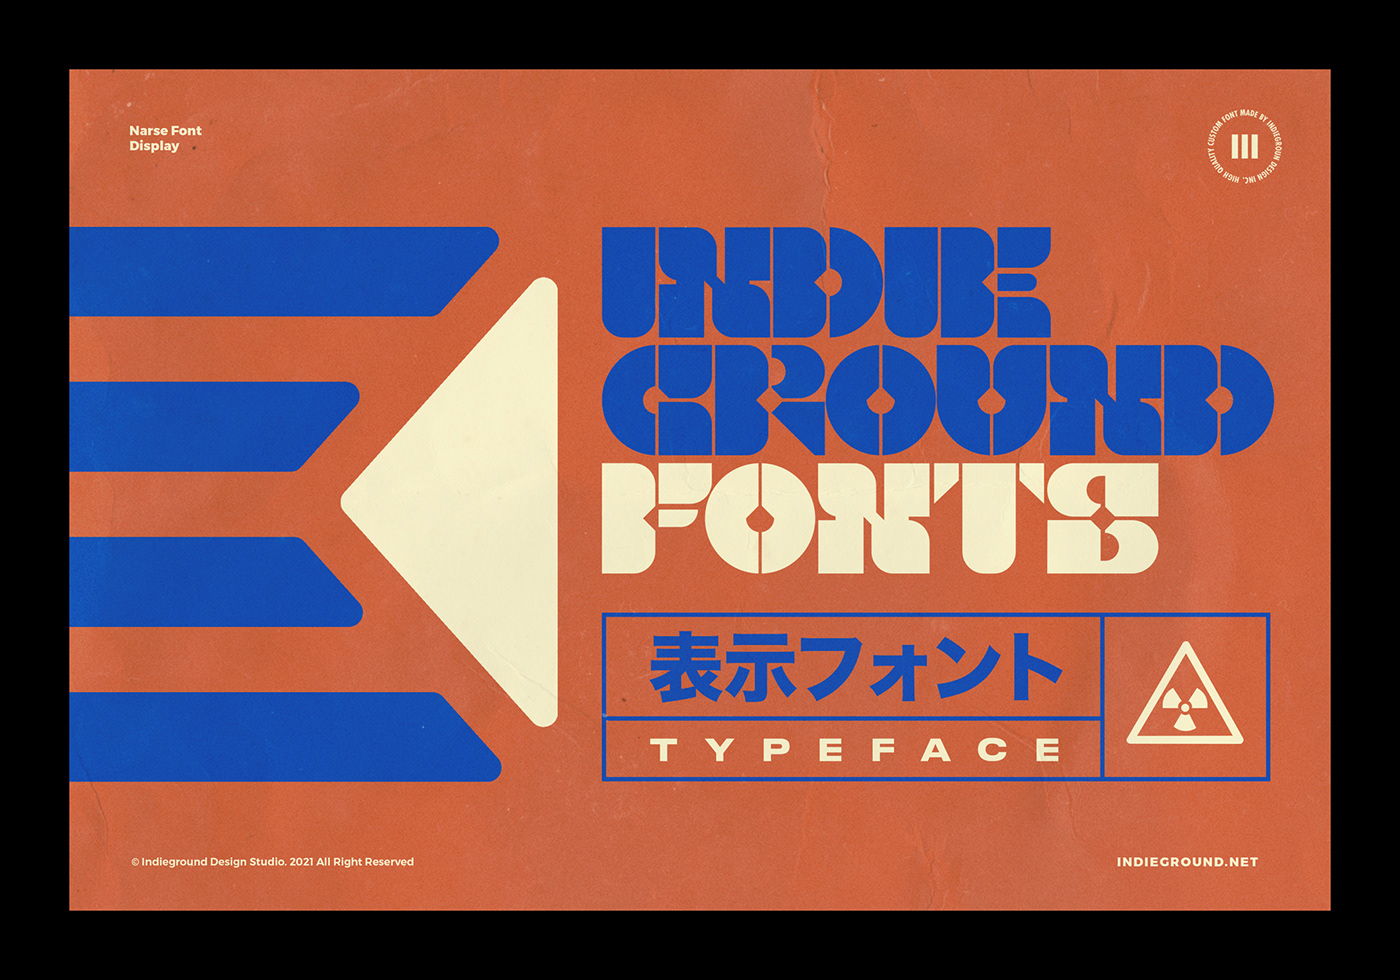 60s,70s,bold,Display,font,jazz,Retro,Typeface,typography  ,vintage